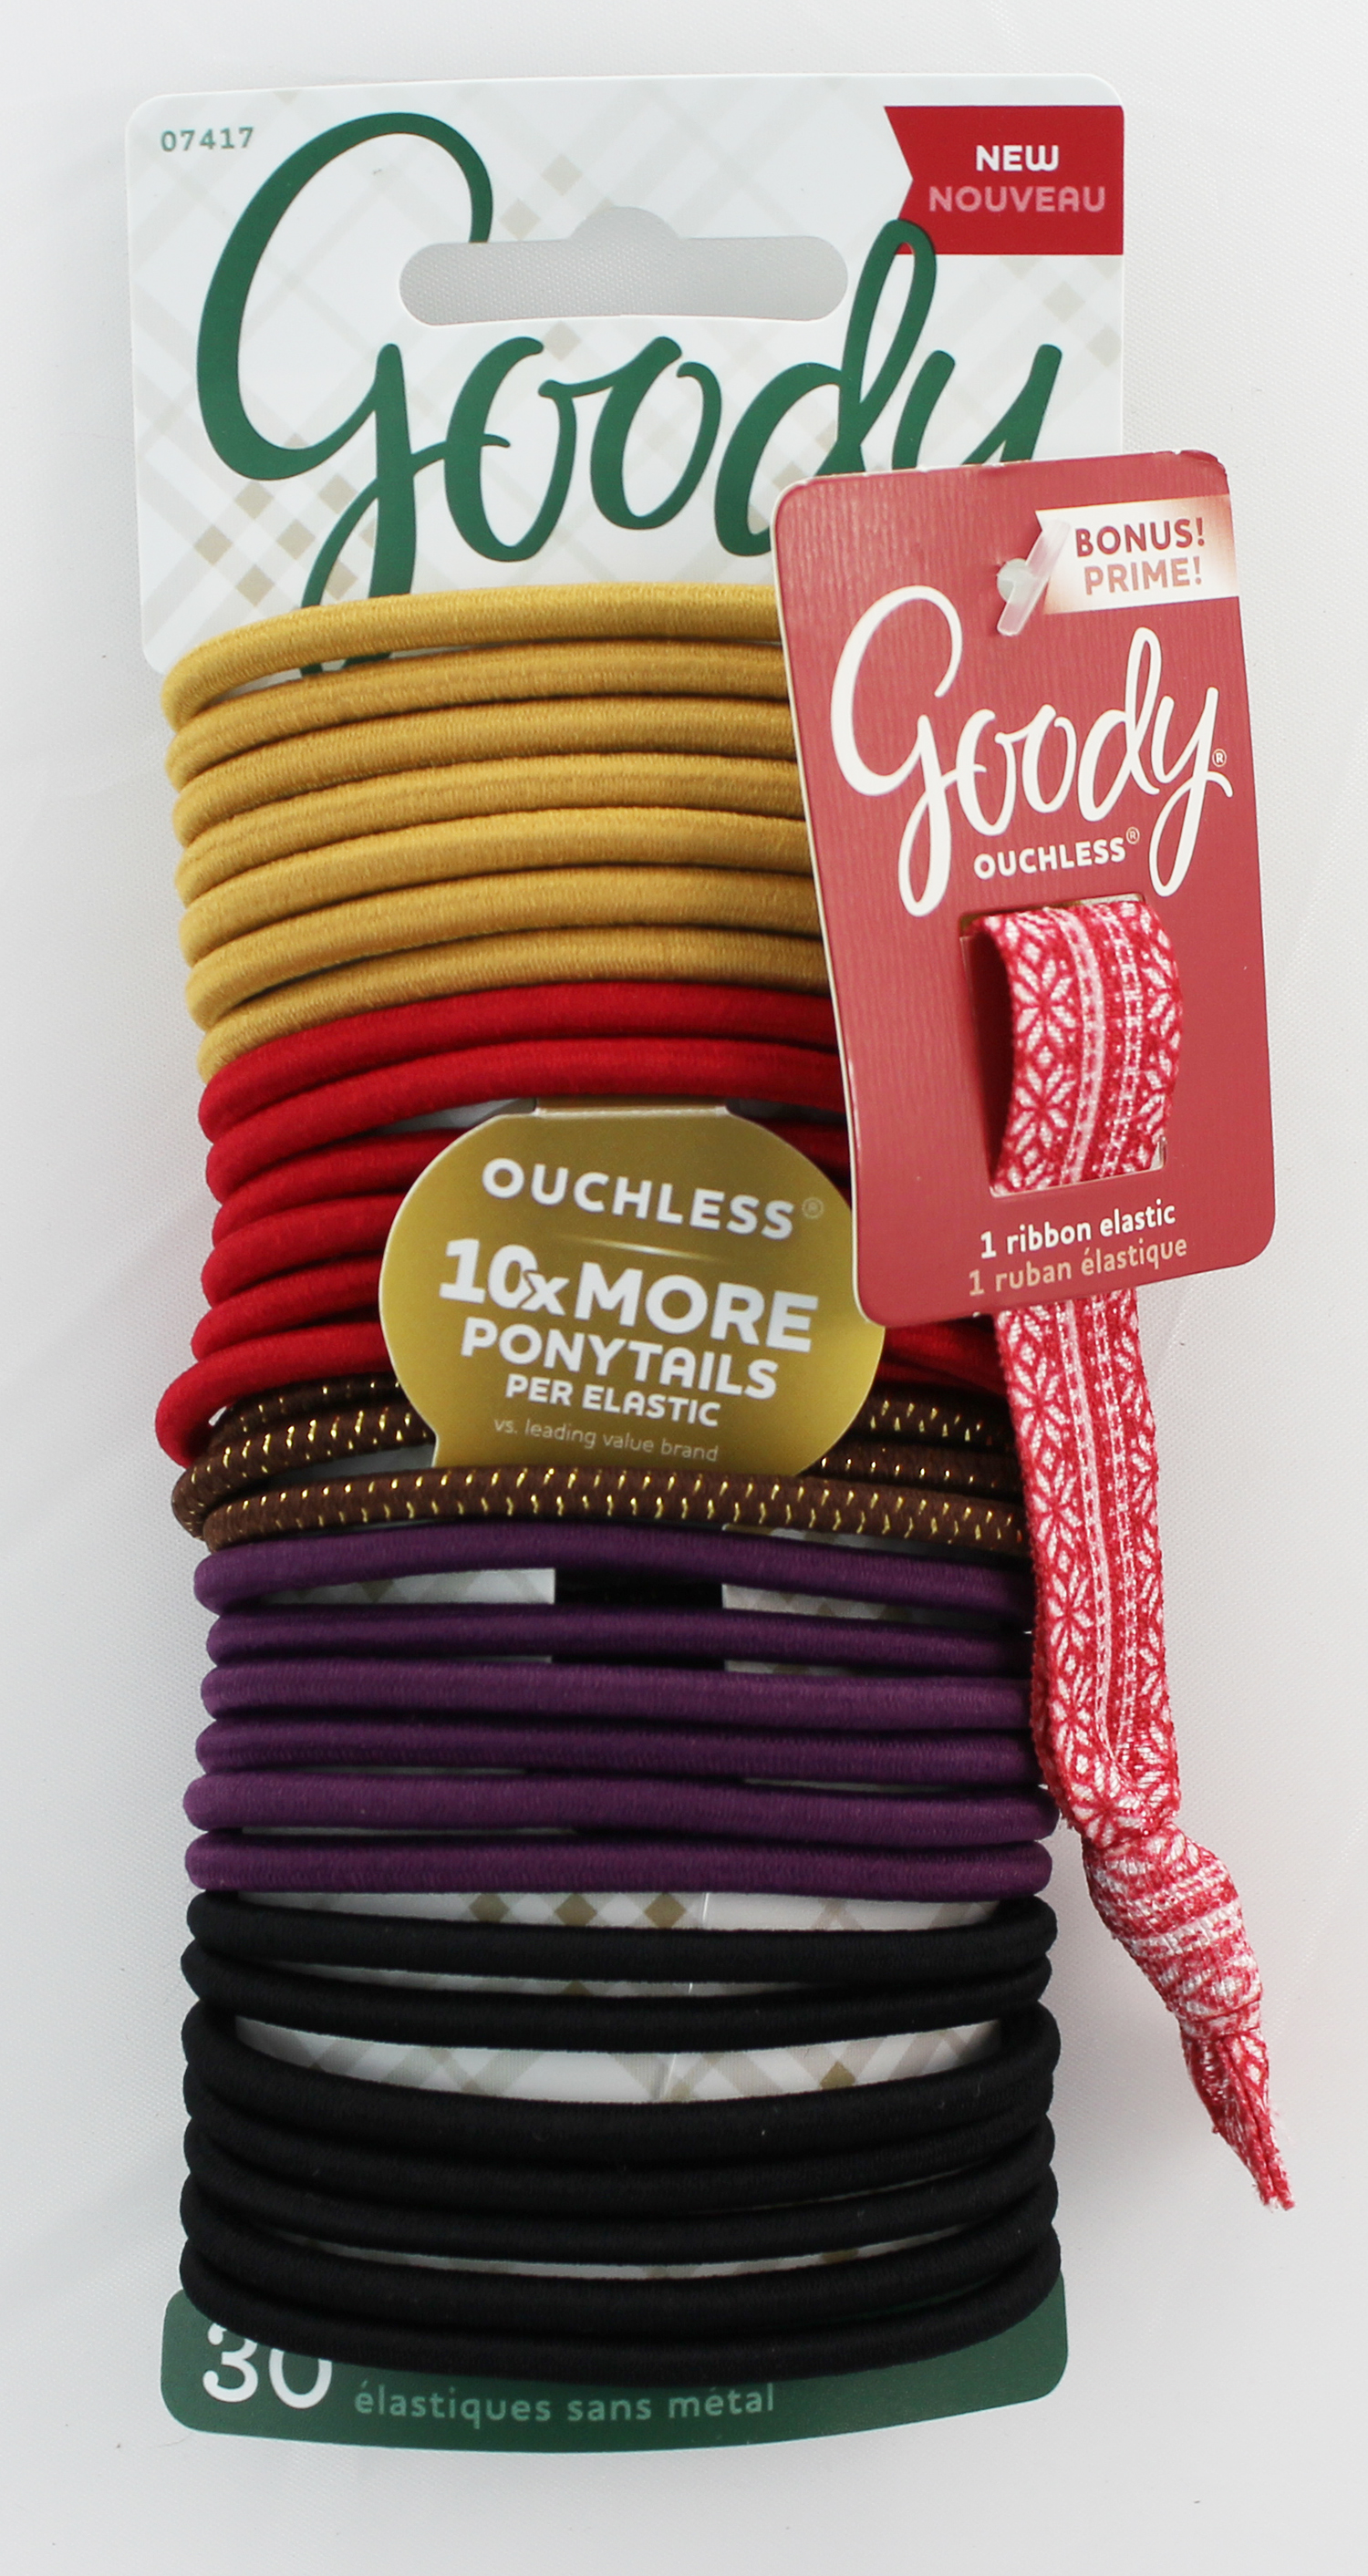 Goody Ouchless No Metal Elastics Ponytail Holder 1963622 07417